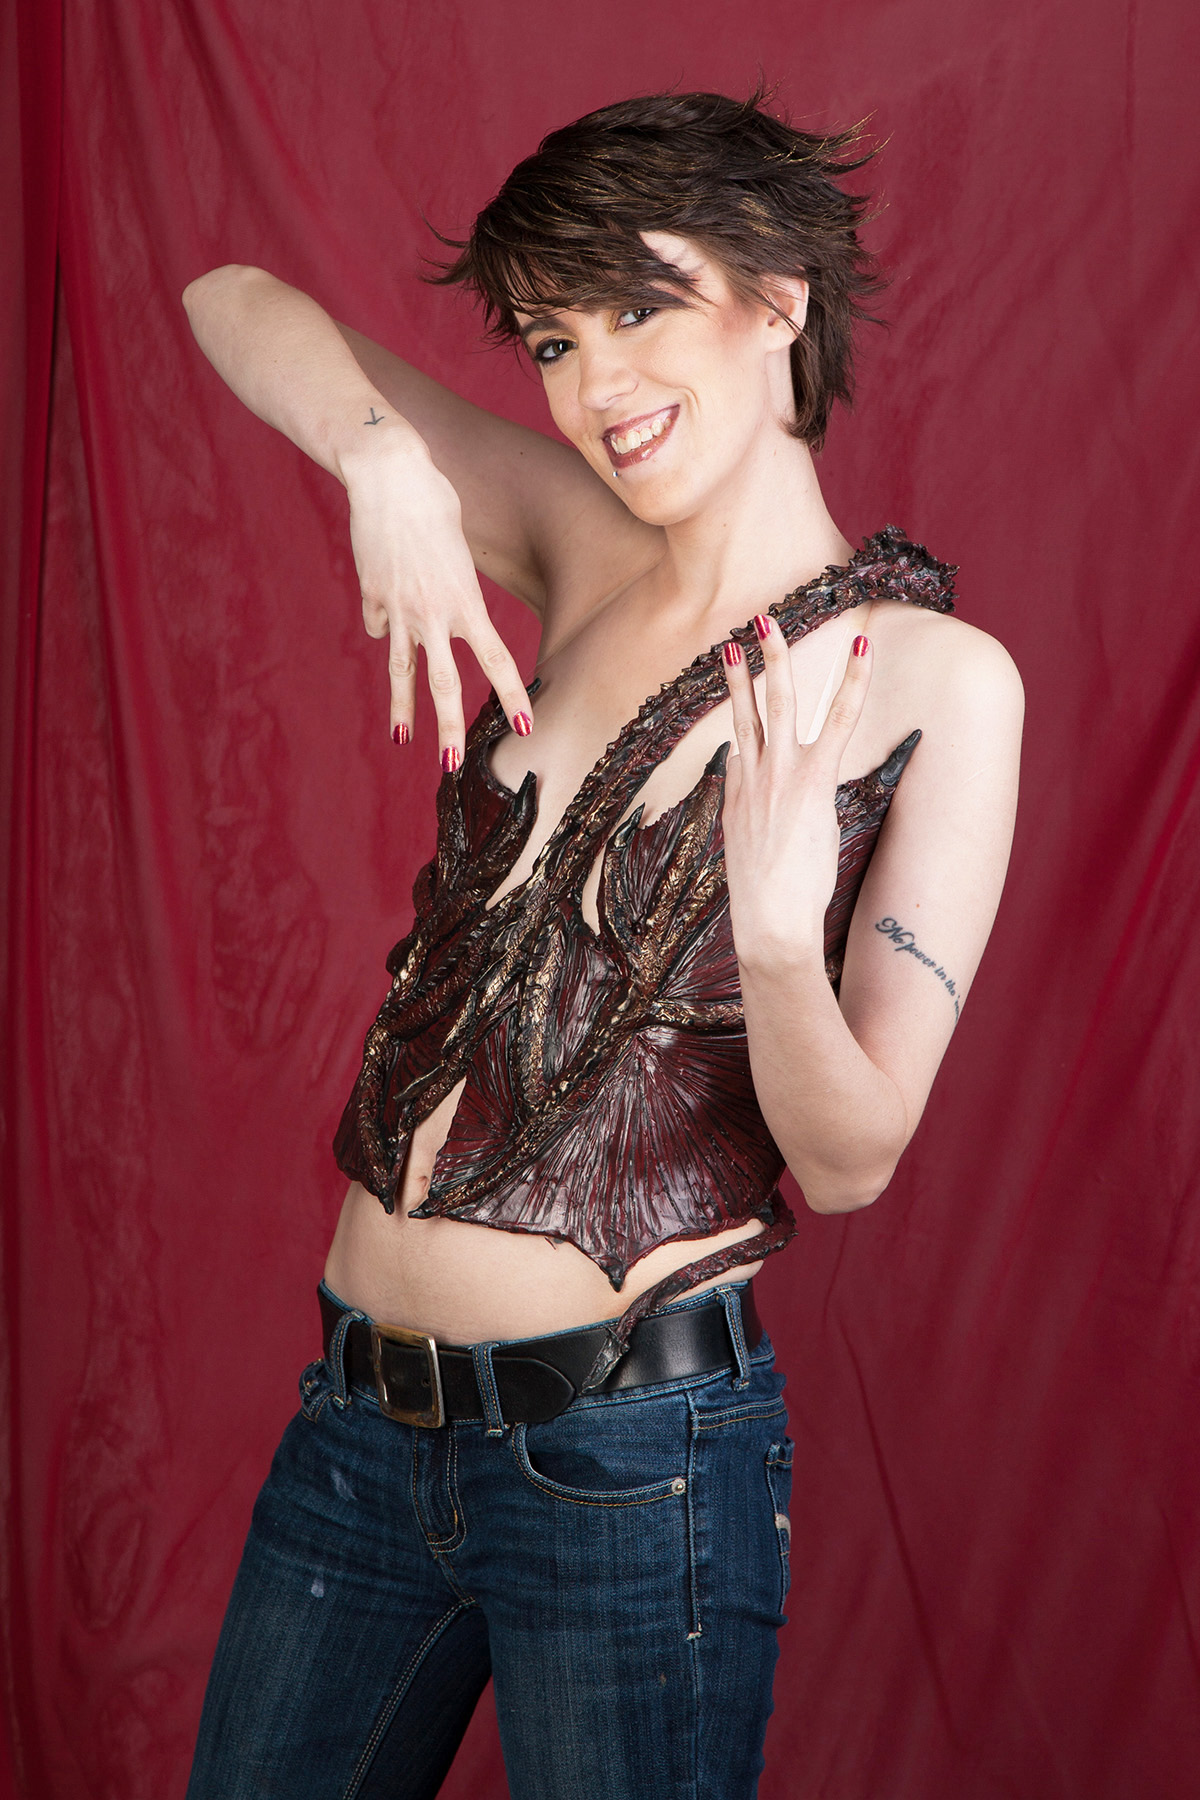 A beautiful young woman with short hair is standing up in front of a red background. She is wearing a dark burgundy latex, 3D sculpted dragon top. It wraps around her torso, and looks like Smaug.